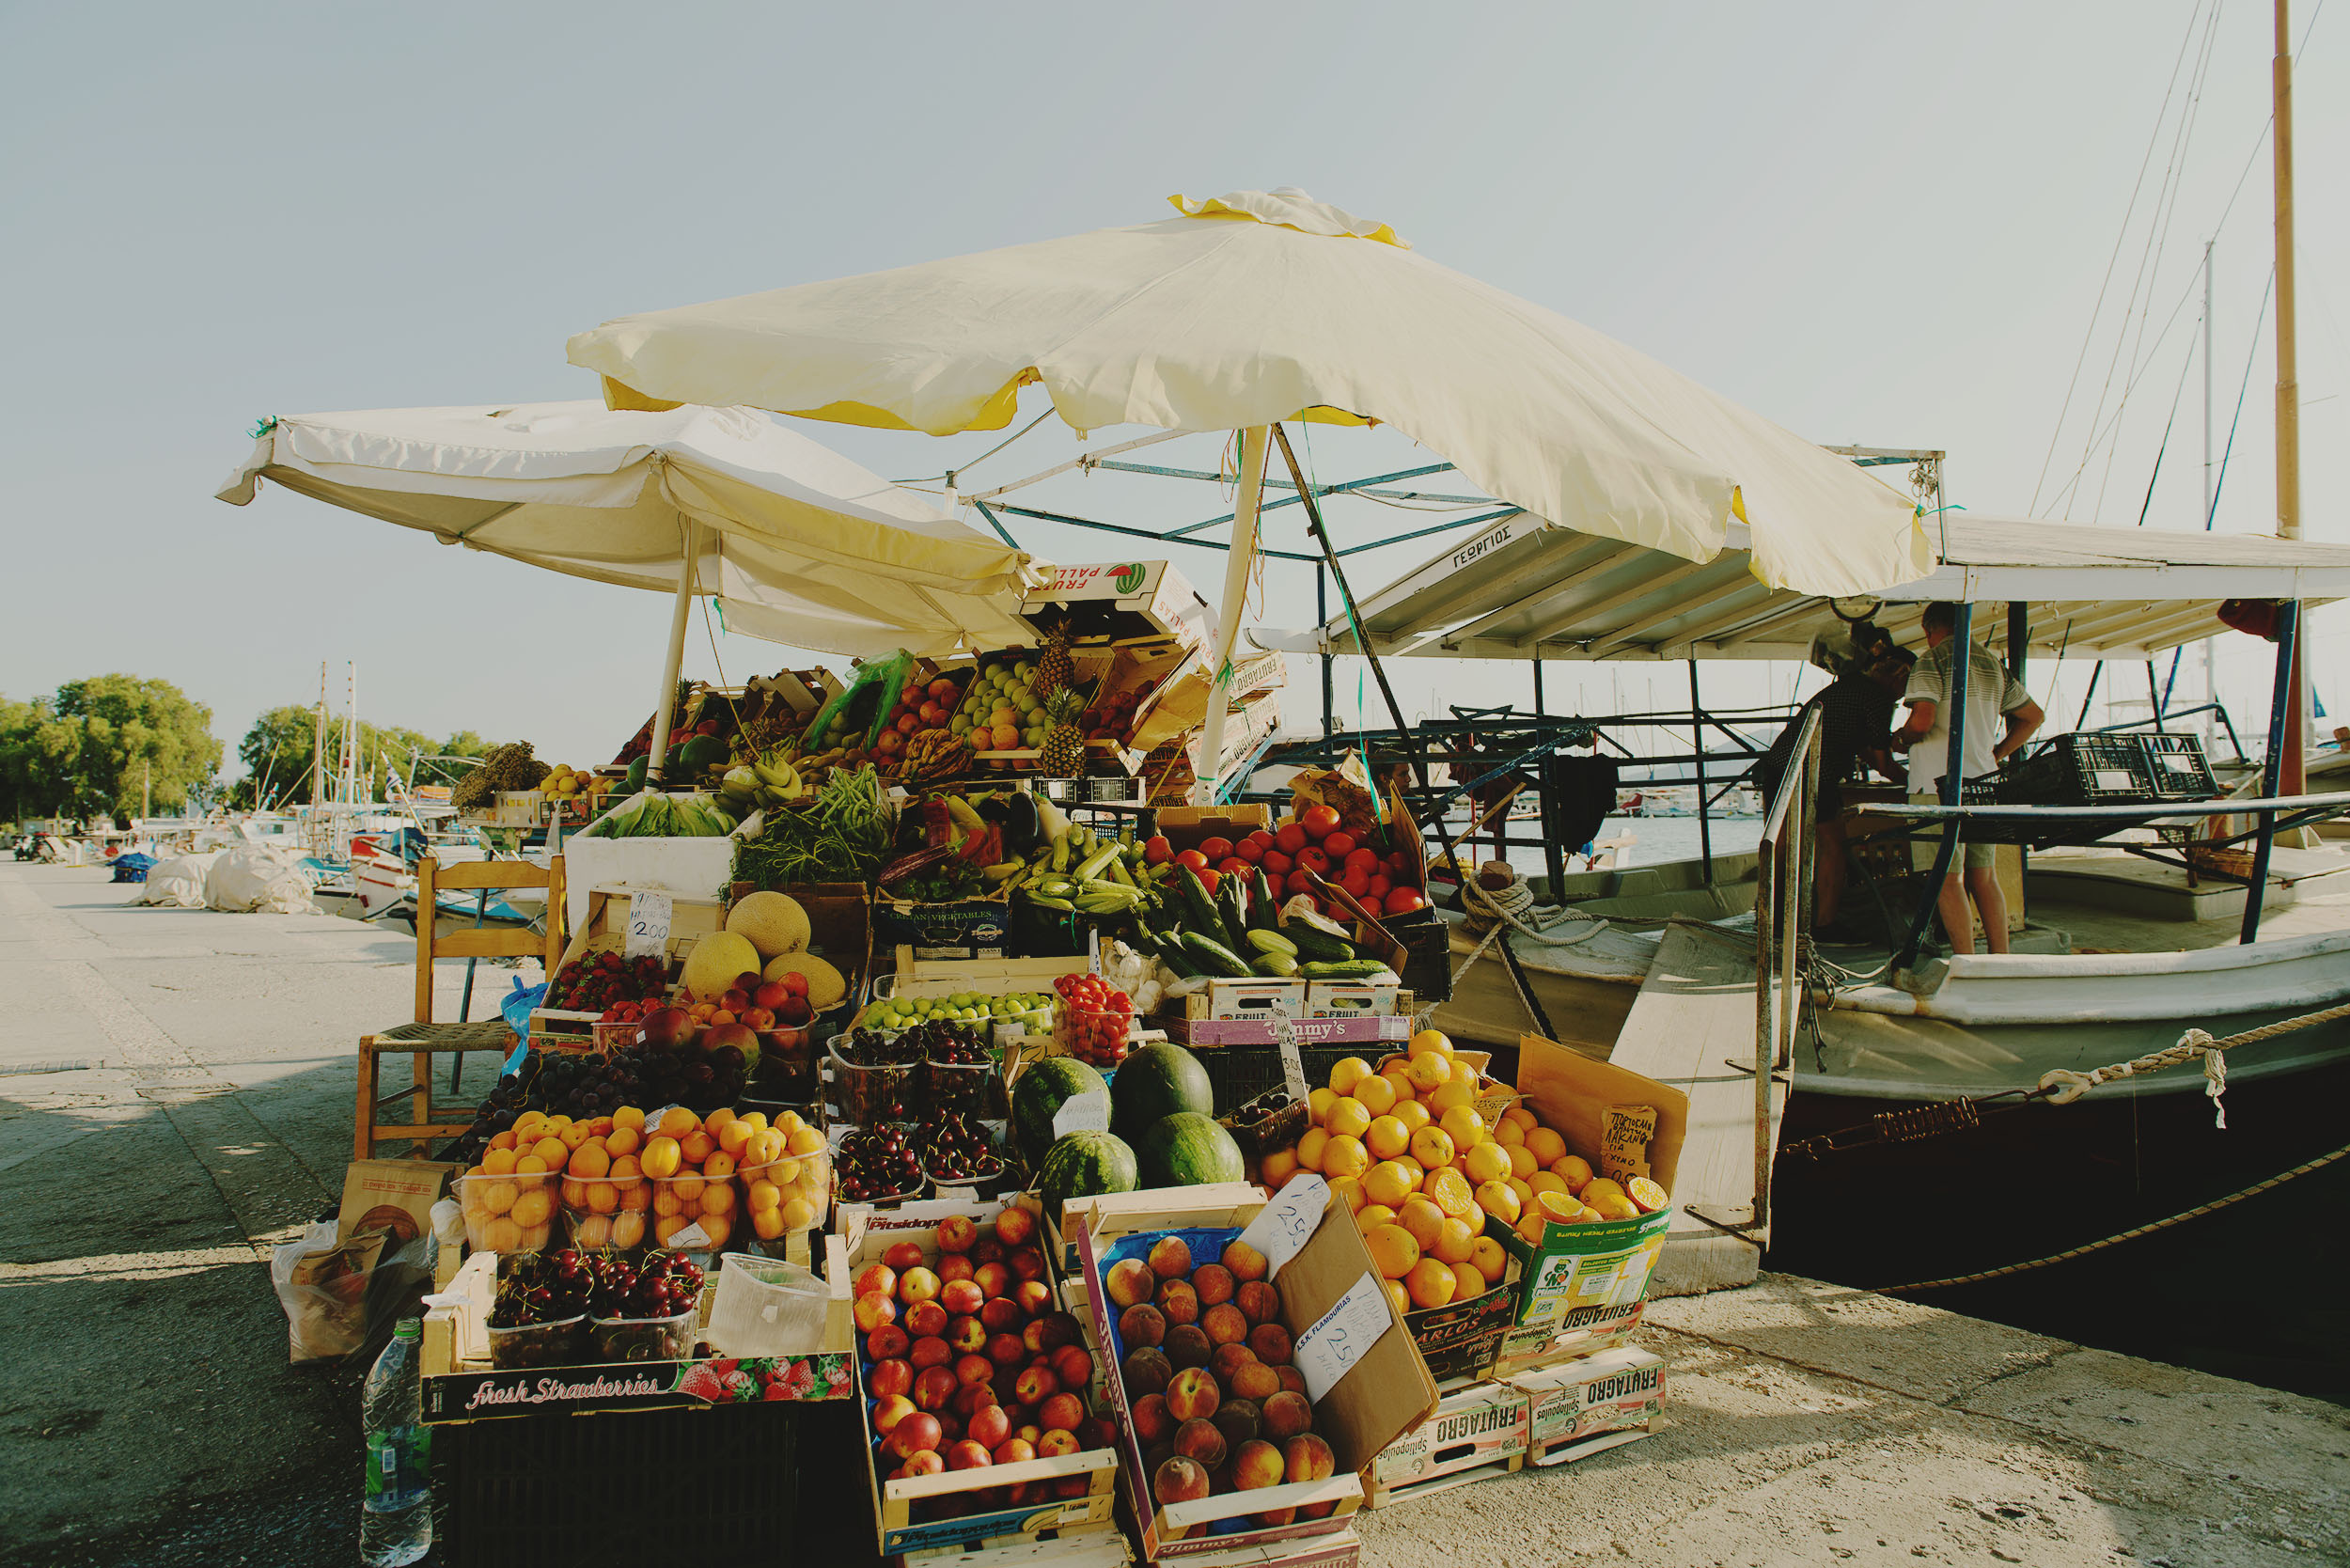 Fruit market in Aegina, Greece.